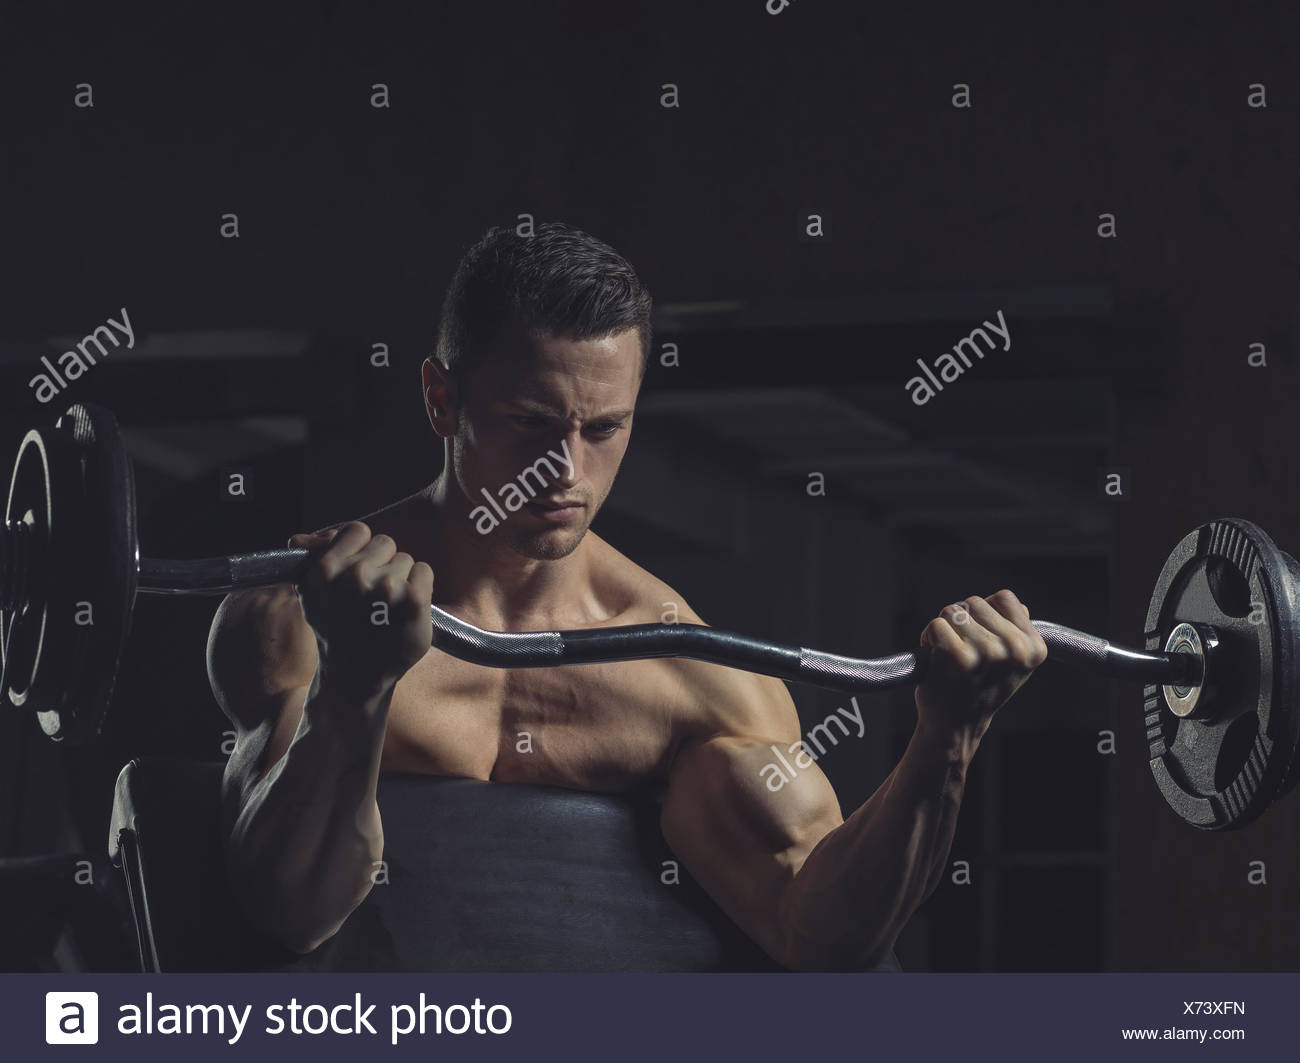 Athlete with bicepscurl, training of biceps - Stock Image